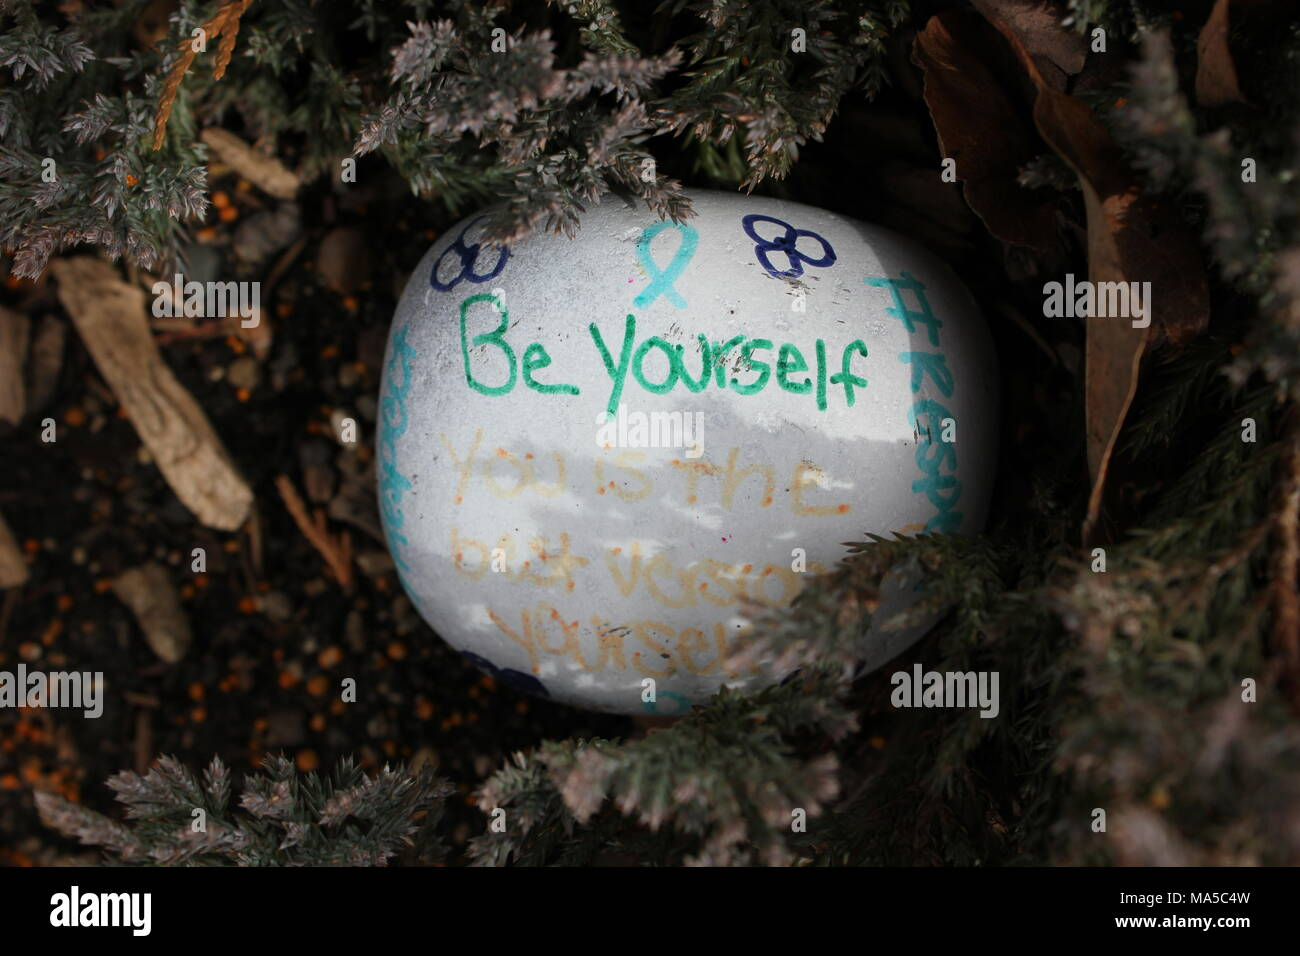 Local street art rock decorated with inspirational sayings 'Be youself' and #respect' and 'You is the best version of yourself.' - Stock Image